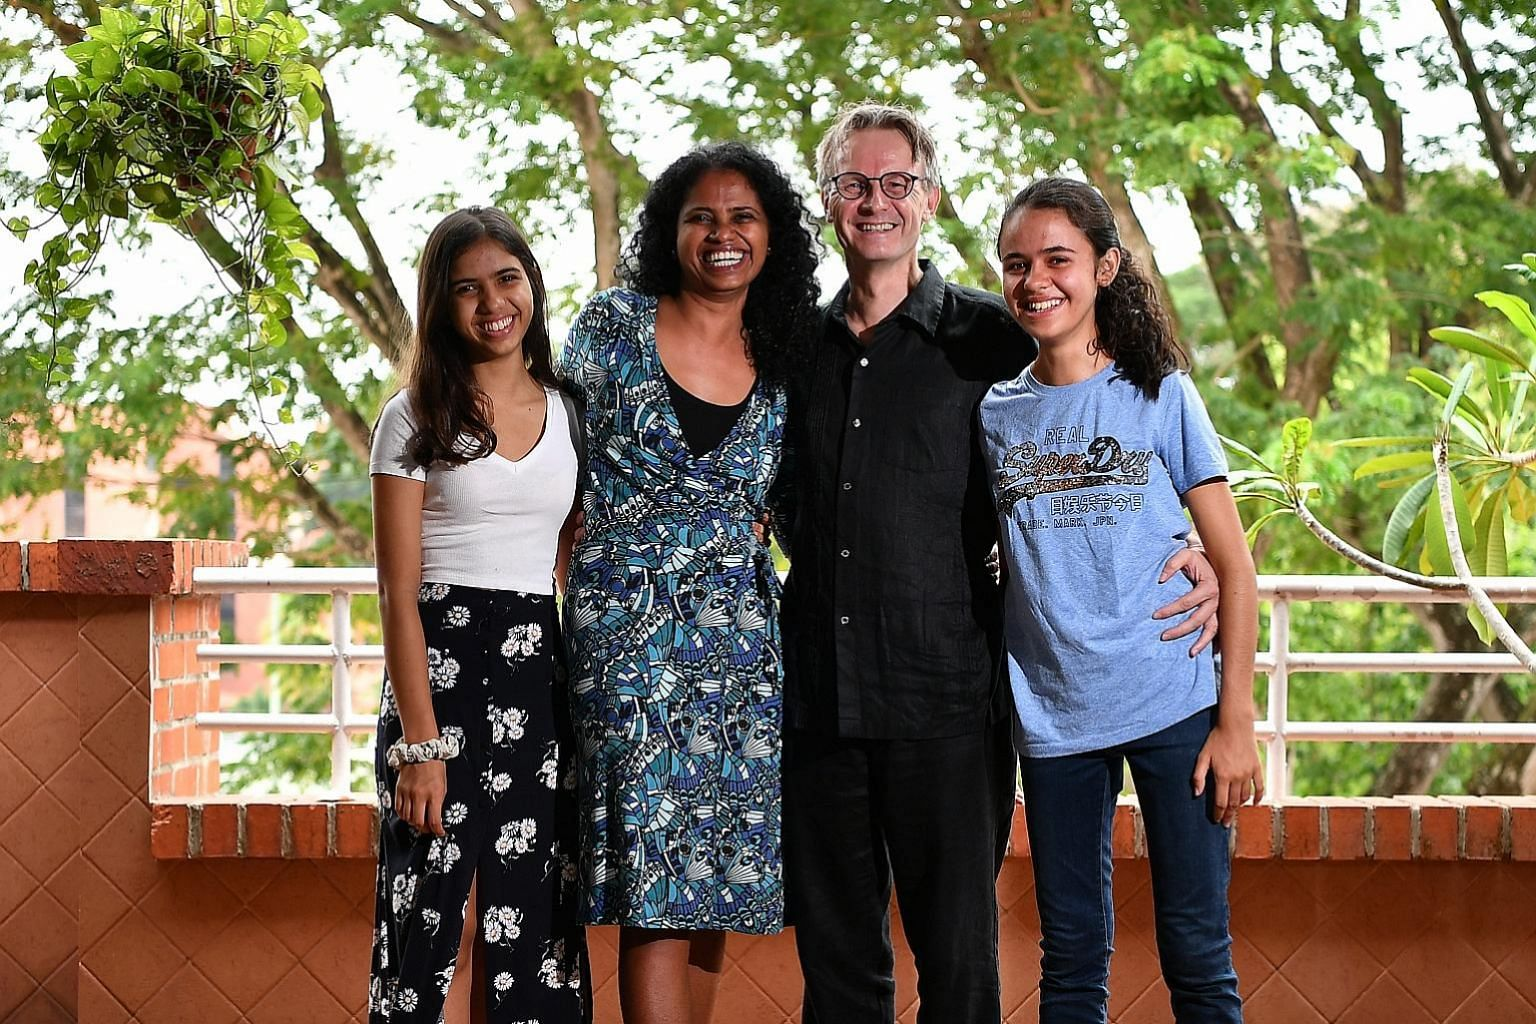 Ms Gloria Pereira, 46, with her husband Torben Kragh Joergensen, 55, and daughters Hannah (left), 17, and Christa, 20.